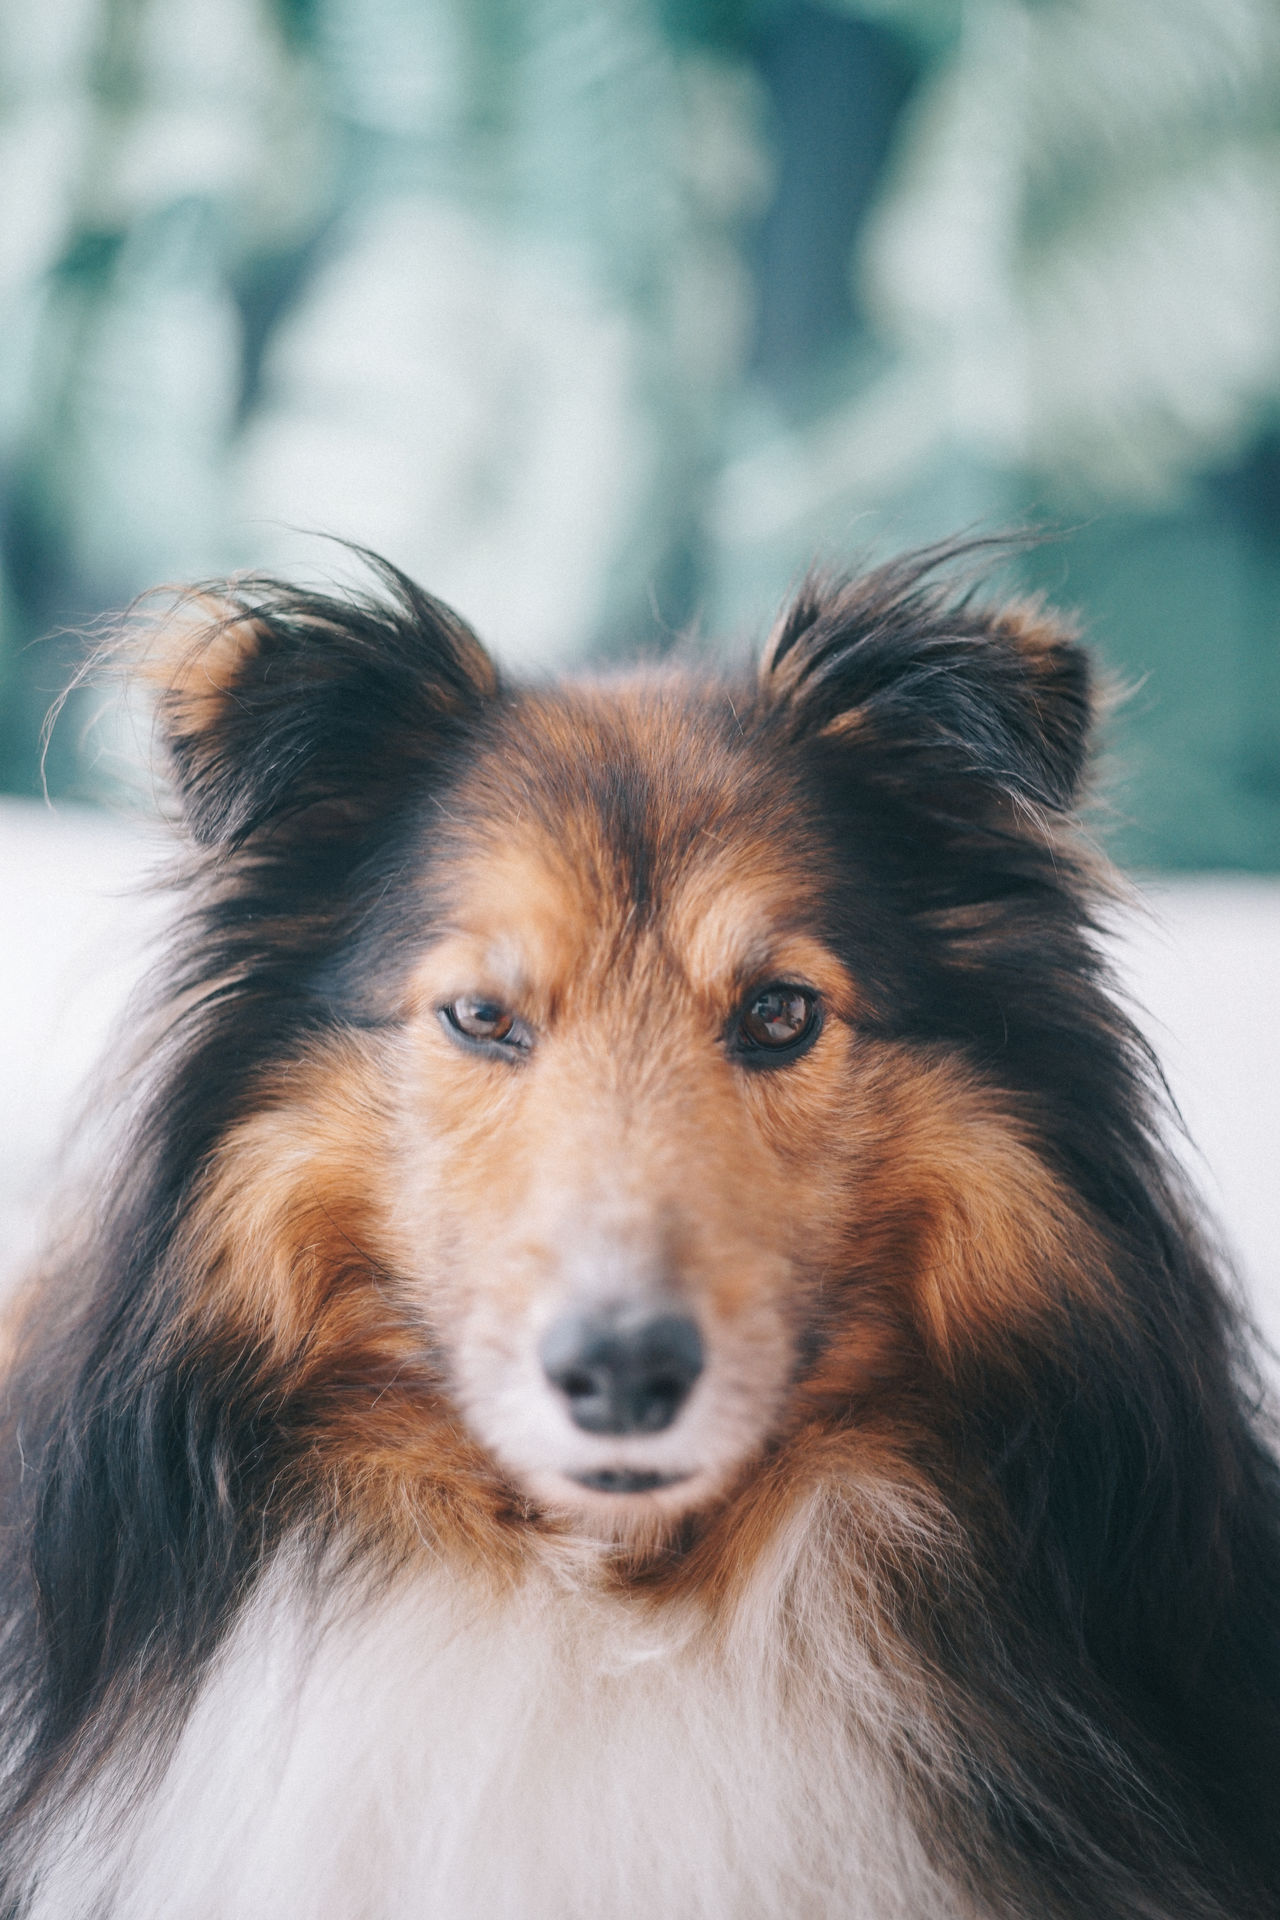 Animal Themes Close-up Day Dog Domestic Animals Focus On Foreground Mammal No People One Animal Outdoors Pets Portrait Sheepdog Sheltie